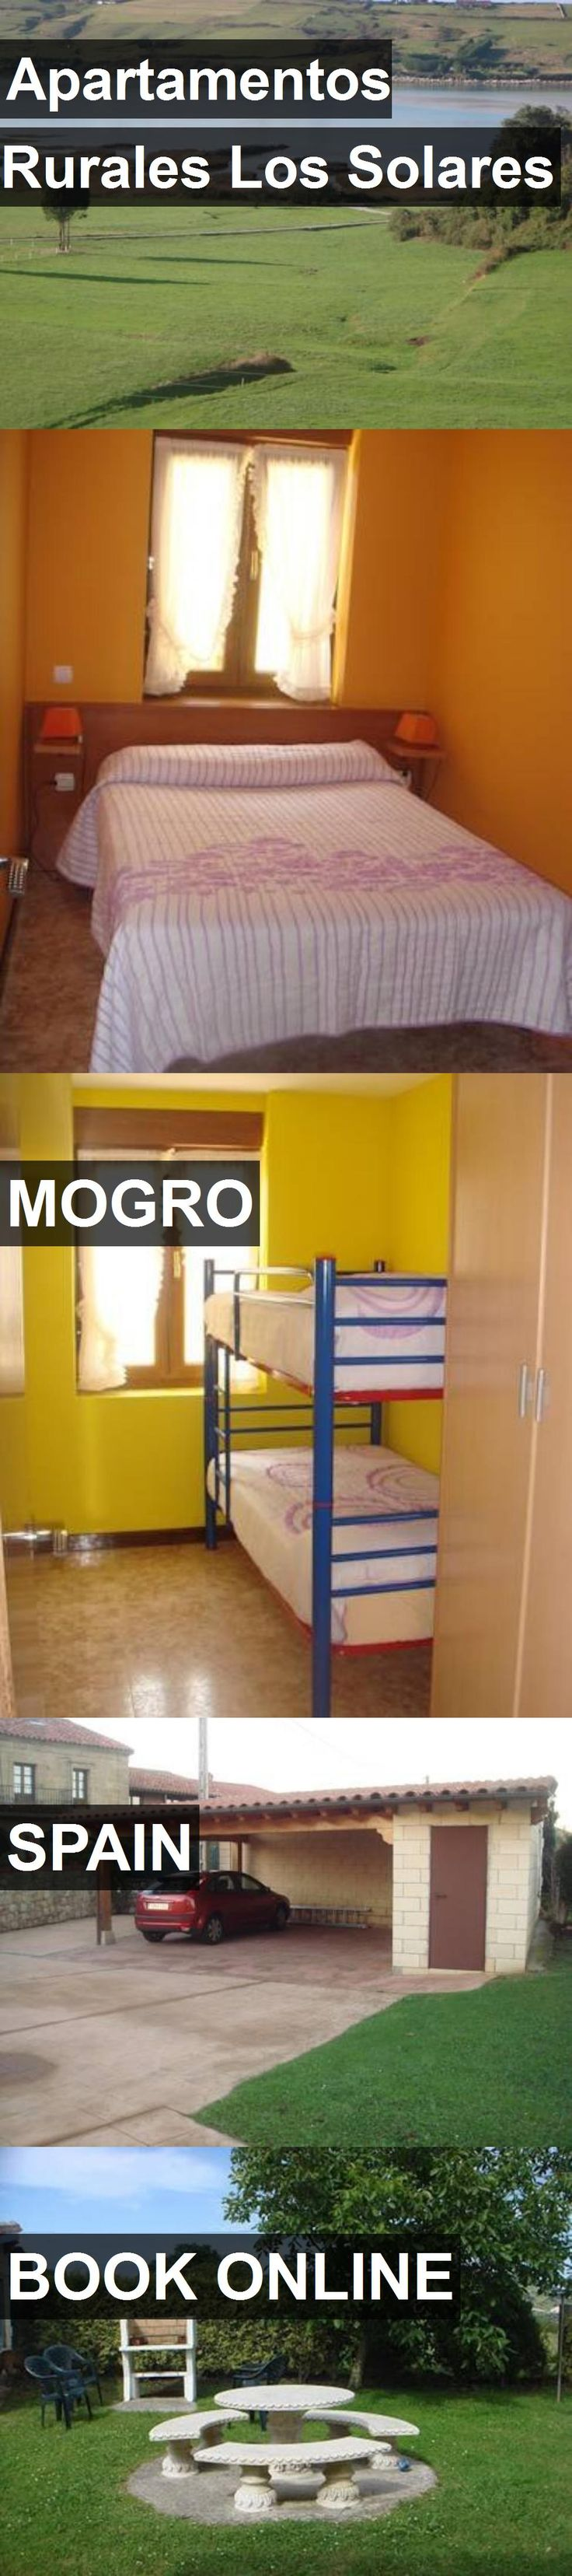 Hotel Apartamentos Rurales Los Solares in Mogro, Spain. For more information, photos, reviews and best prices please follow the link. #Spain #Mogro #travel #vacation #hotel